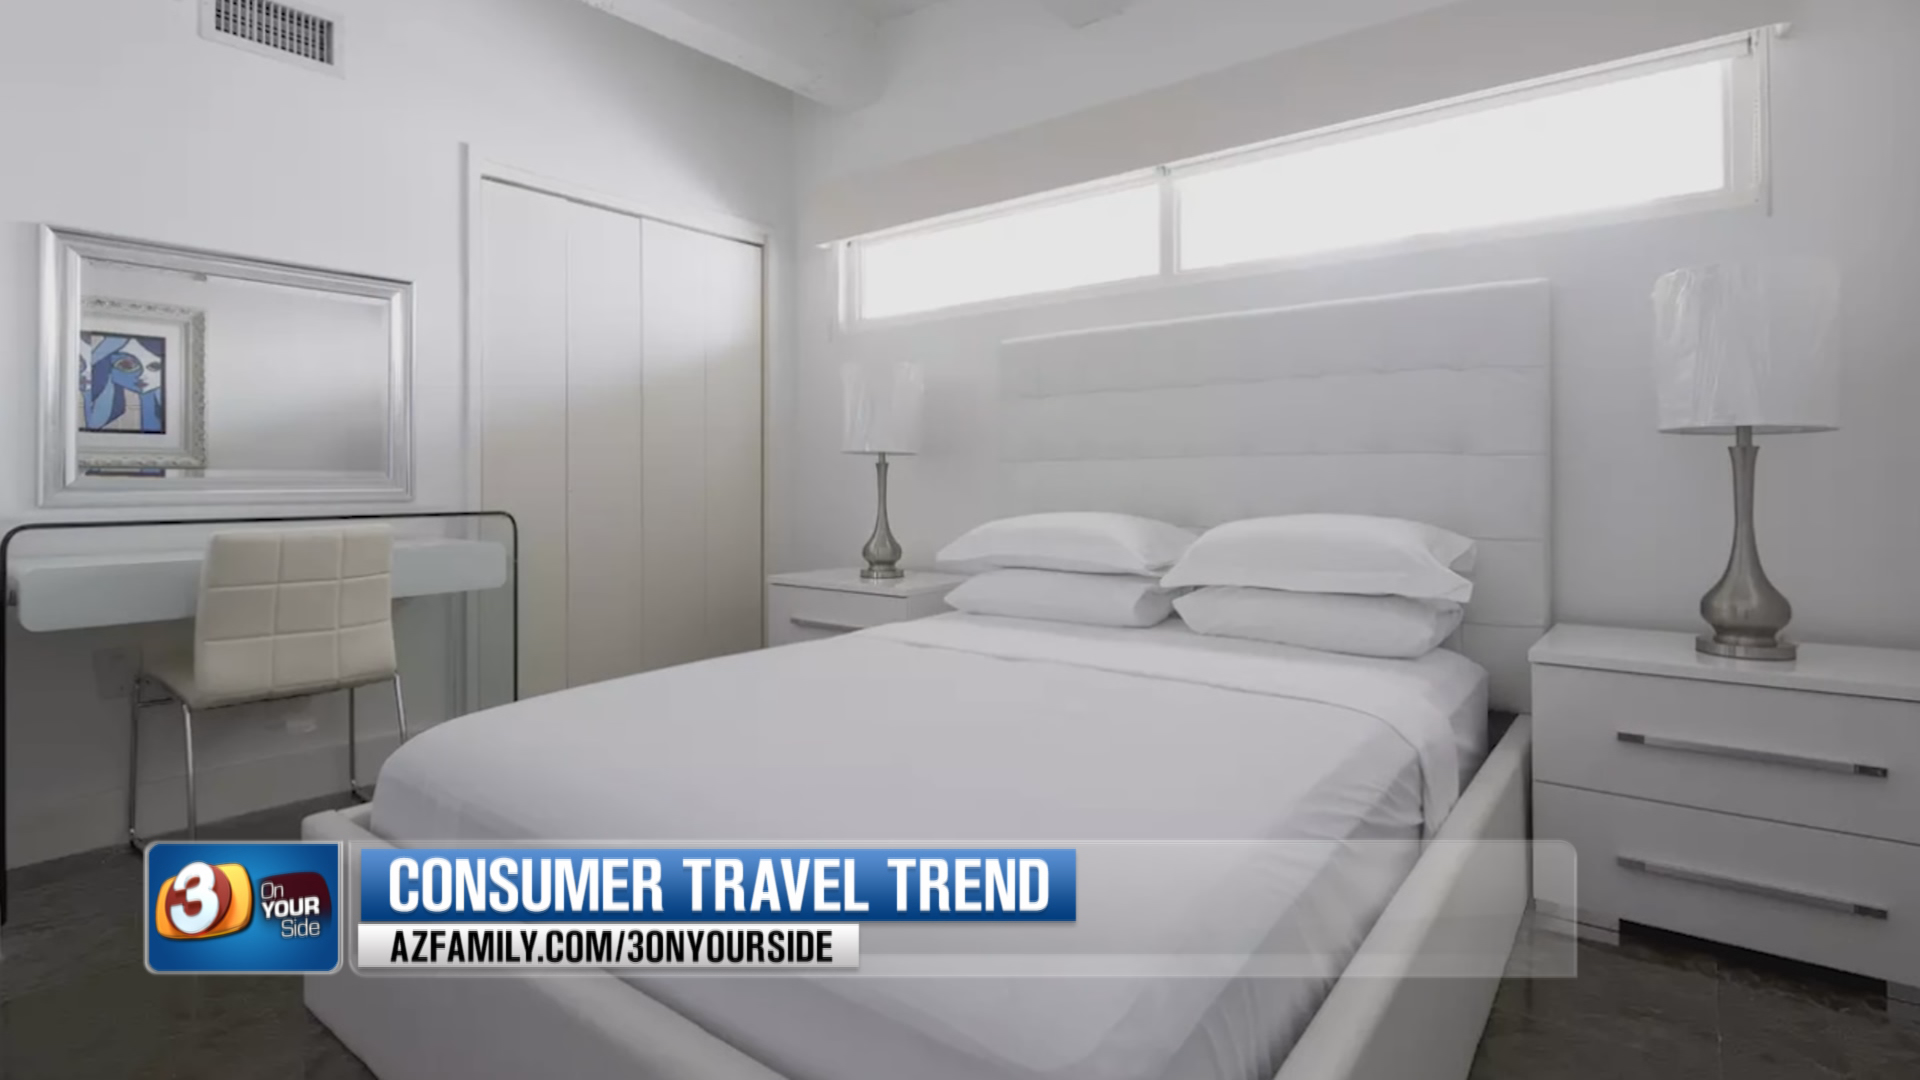 Some peer-to-peer rental sites now focus on a more hotel-like experience. (Source: 3TV/CBS 5)